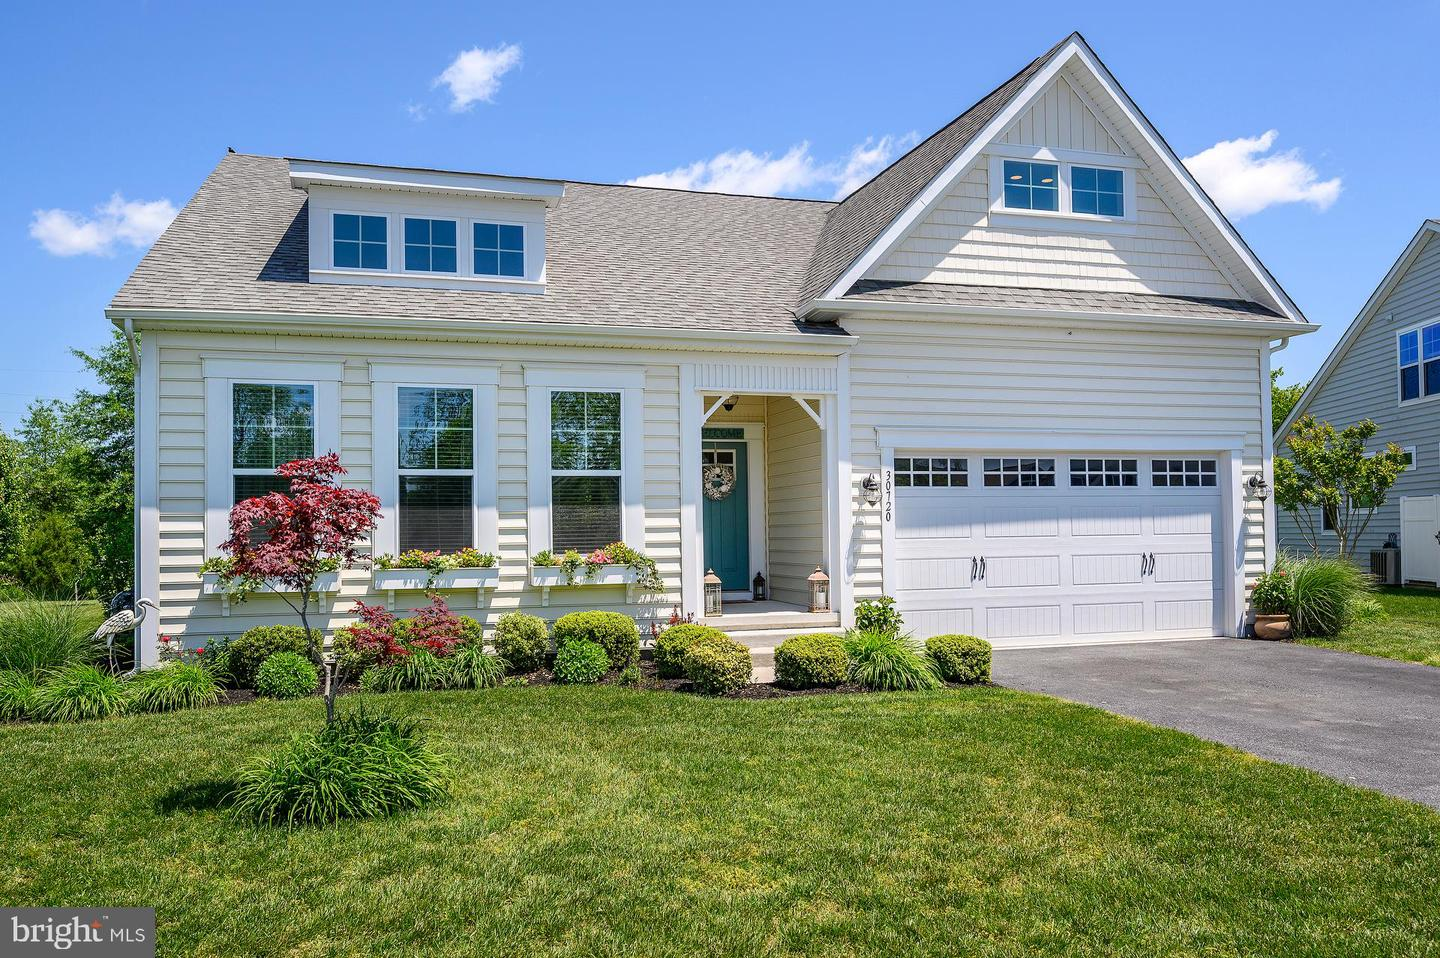 Single Family Home for Sale at Millville, Delaware 19967 United States